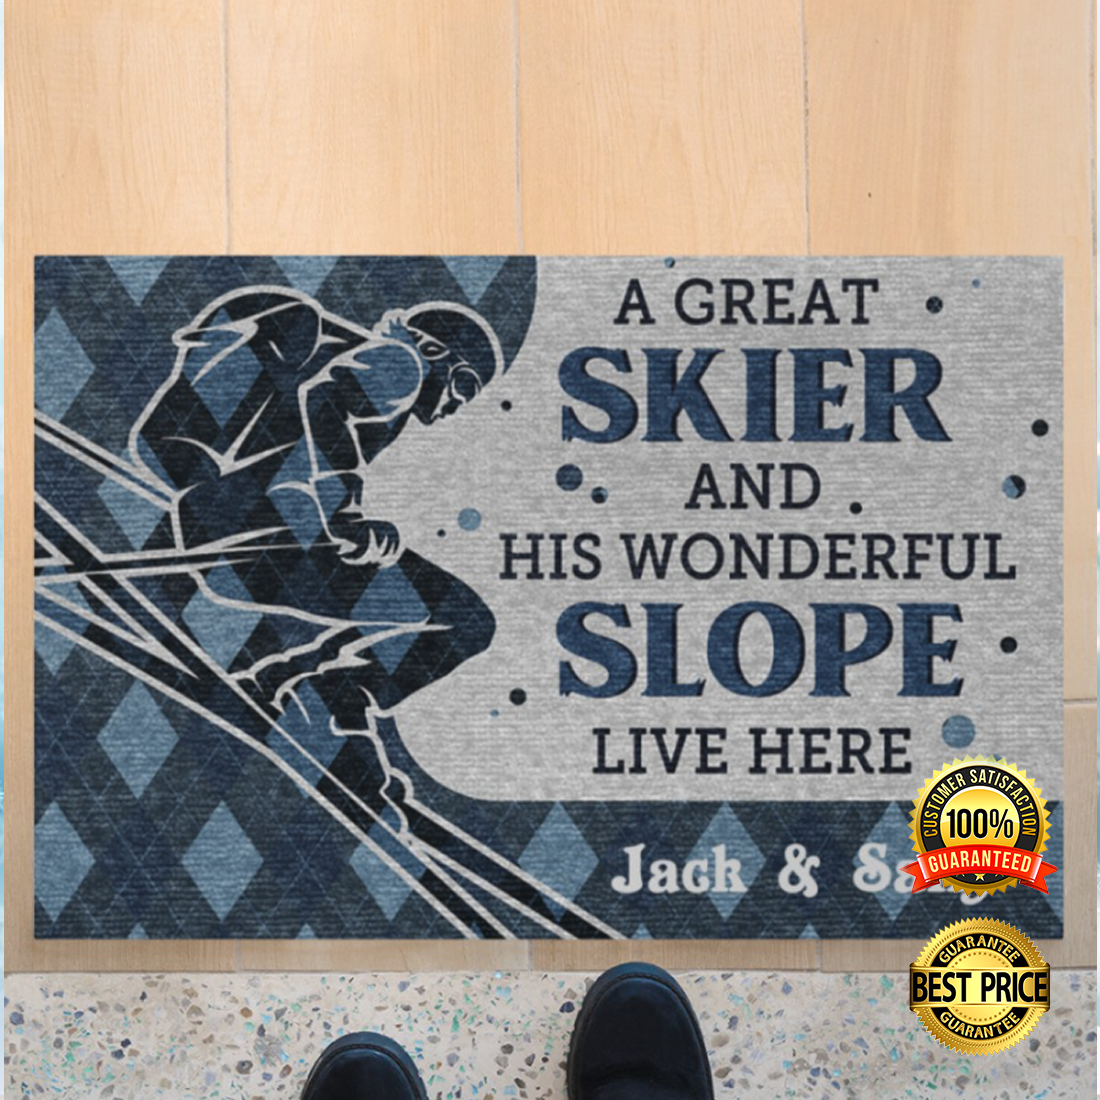 PERSONALIZED A GREAT SKIER AND HIS WONDERFUL SLOPE LIVE HERE DOORMAT 4